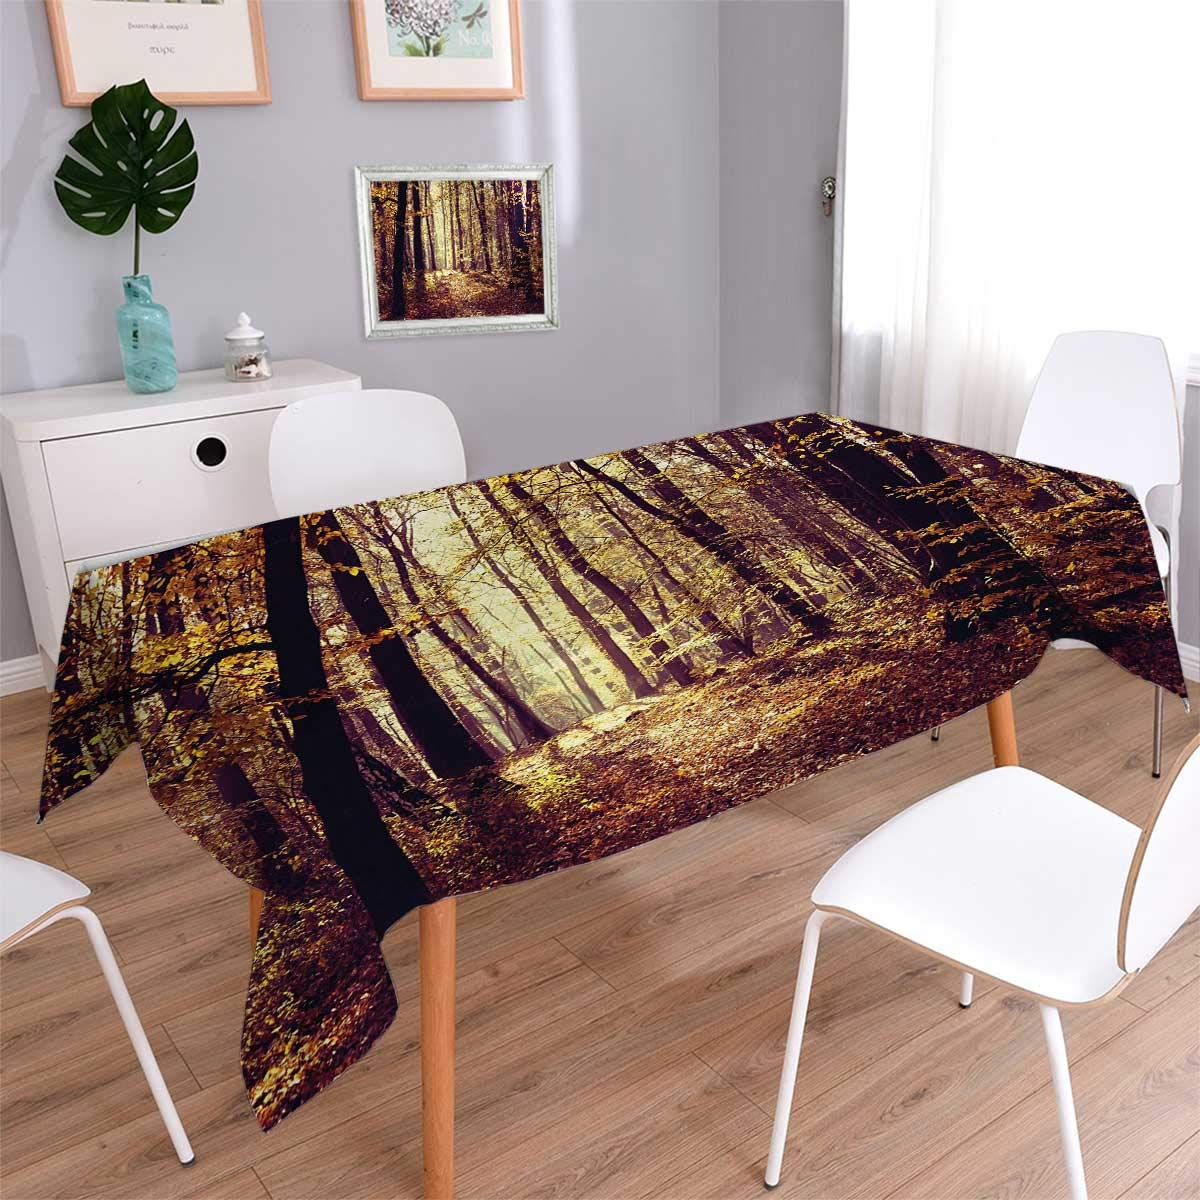 Forest Oblong Customized Tablecloth Mysterious Atmosphere Misty Woods Trees Nature Landscape Stain Resistant Wrinkle Tablecloth Dark Orange Dark Brown Light Yellow Size: W54'' x L72''